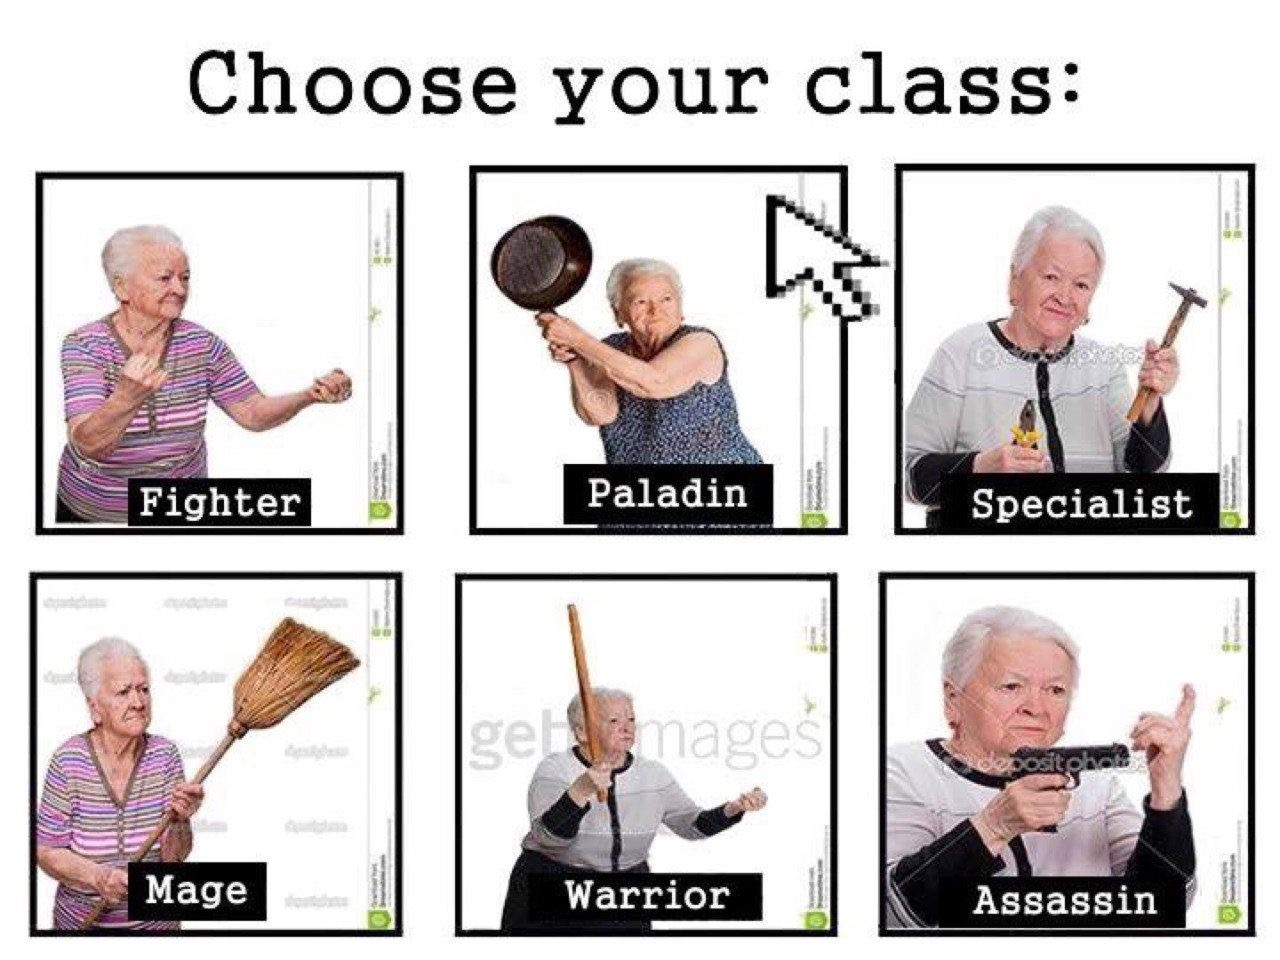 Which class will you choose